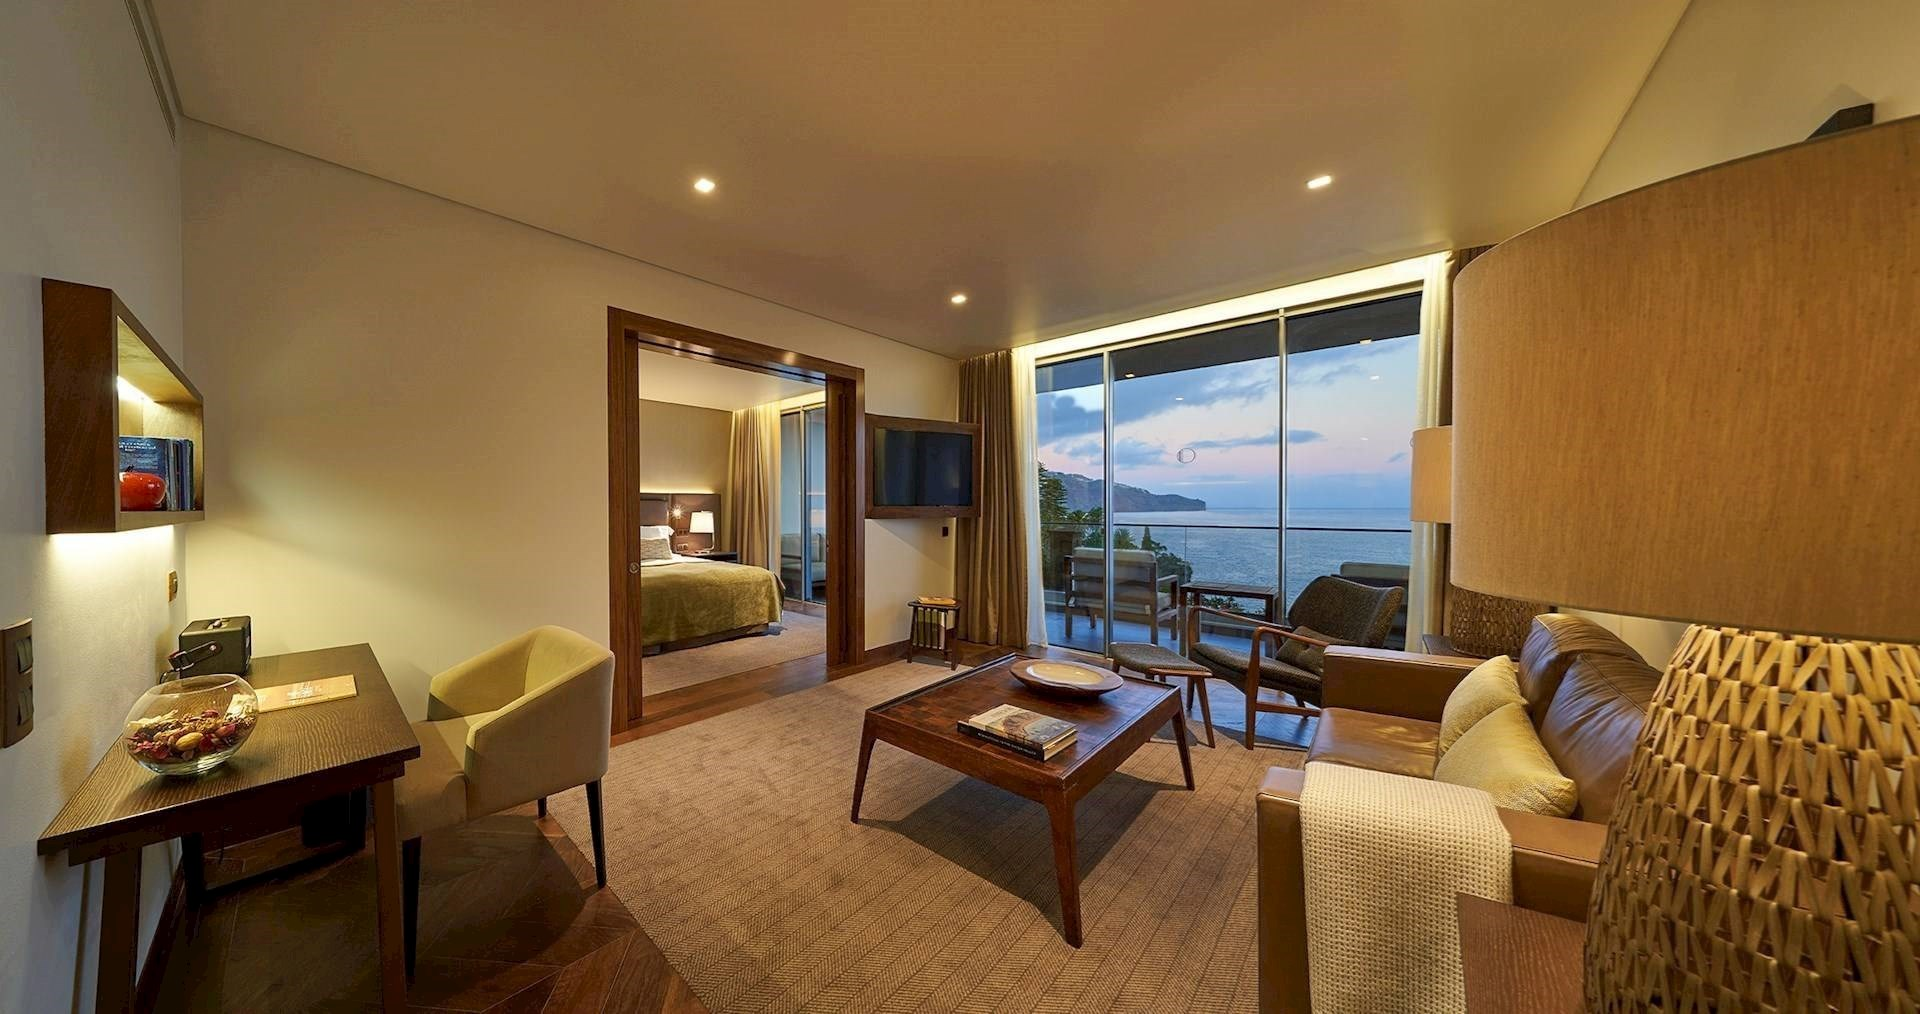 Les Suites at The Cliff Bay - Madeira Island - Suite